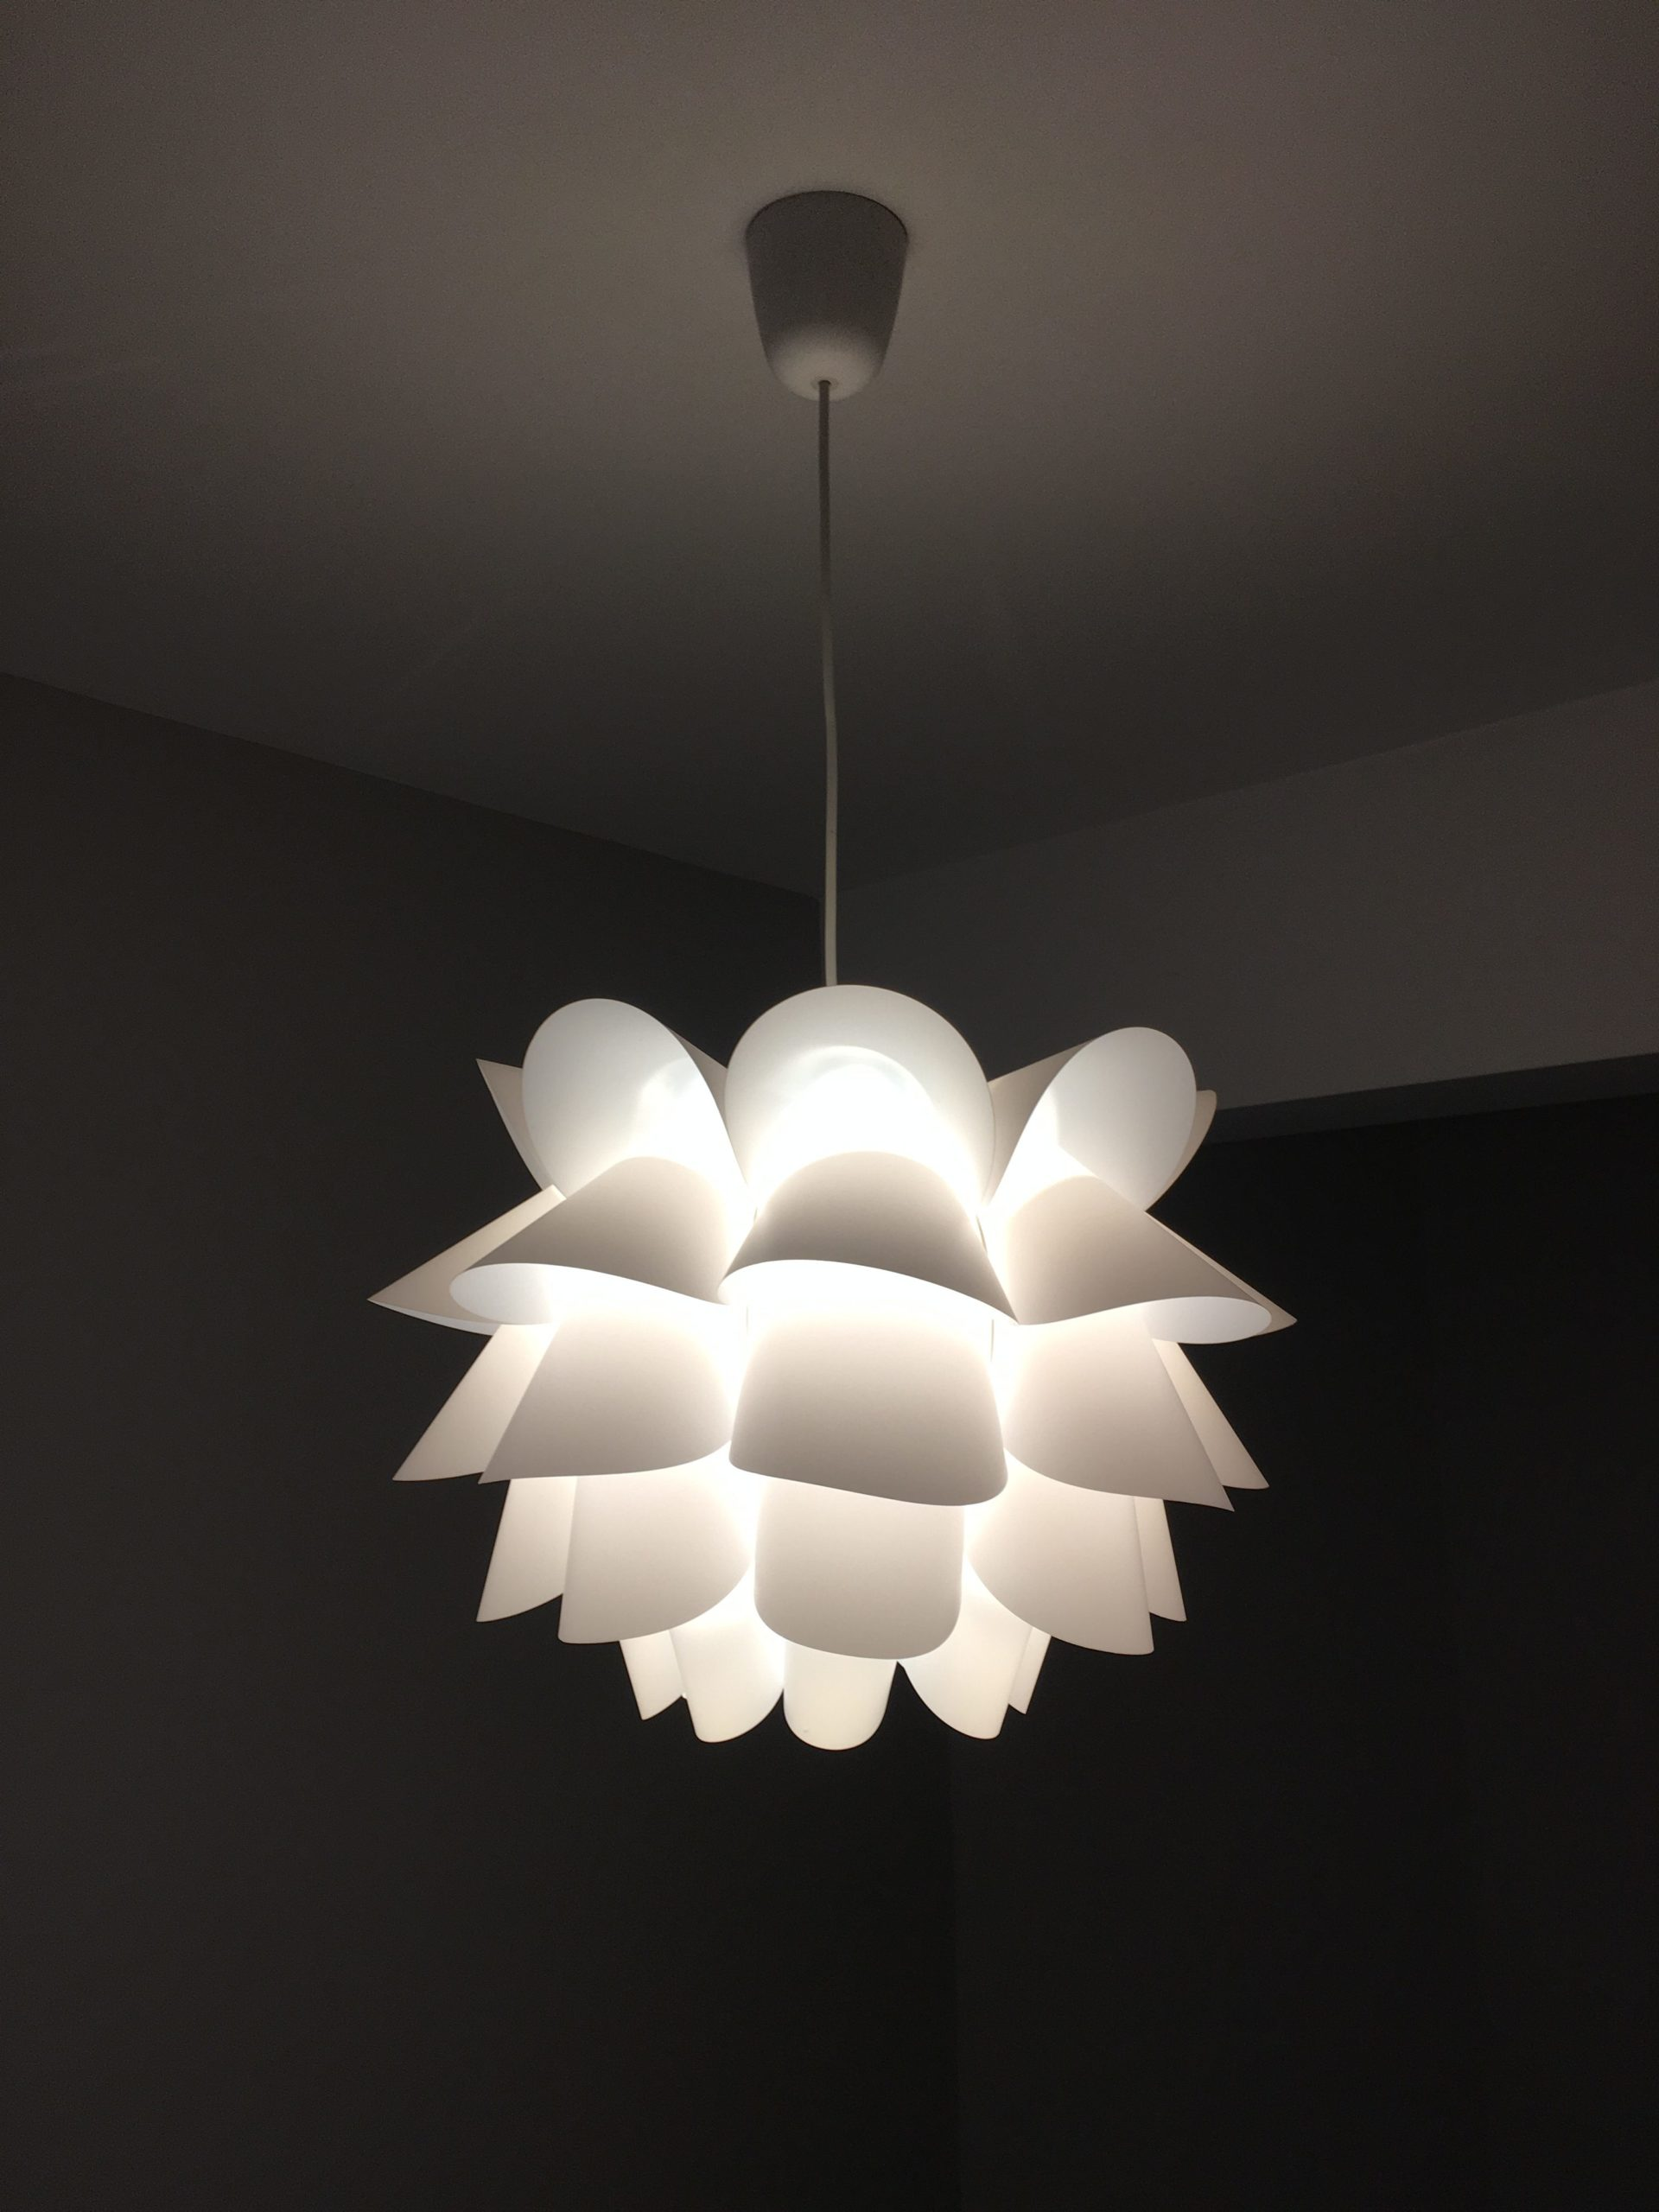 Knappa IKEA light in show home designed by Amelia Wilson Interiors Ltd